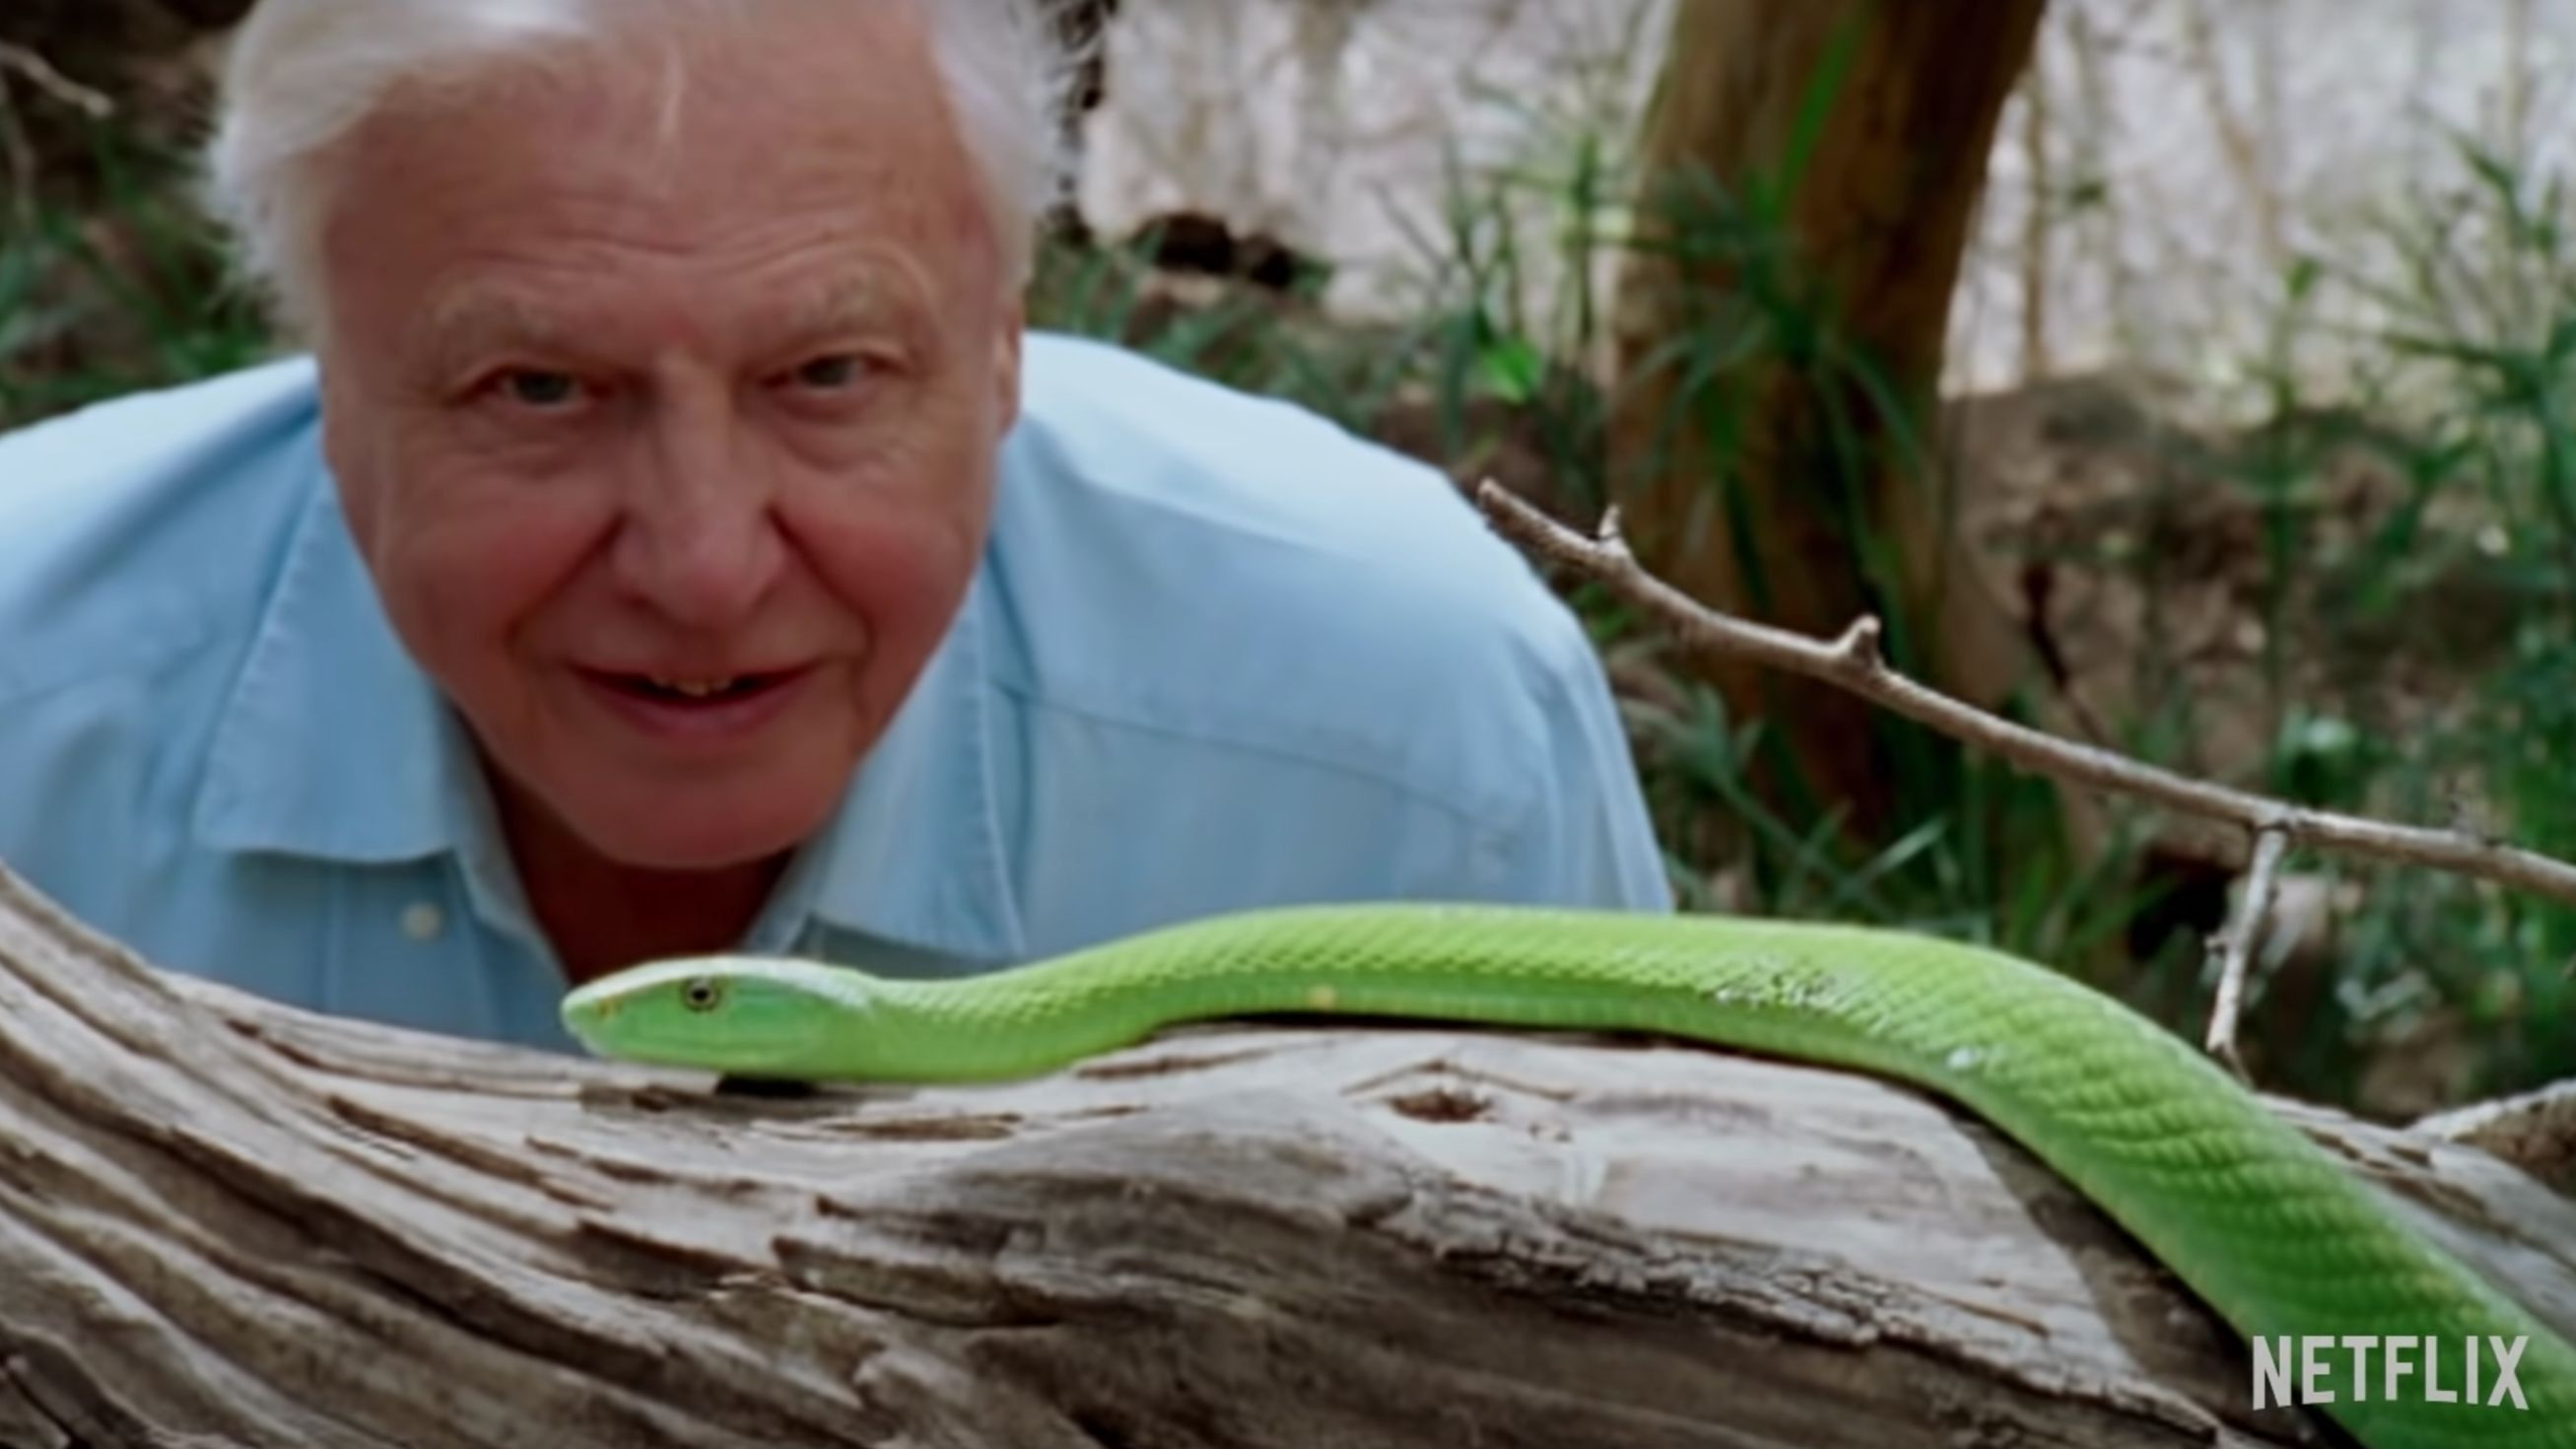 Netflix releases trailer for new David Attenborough documentary